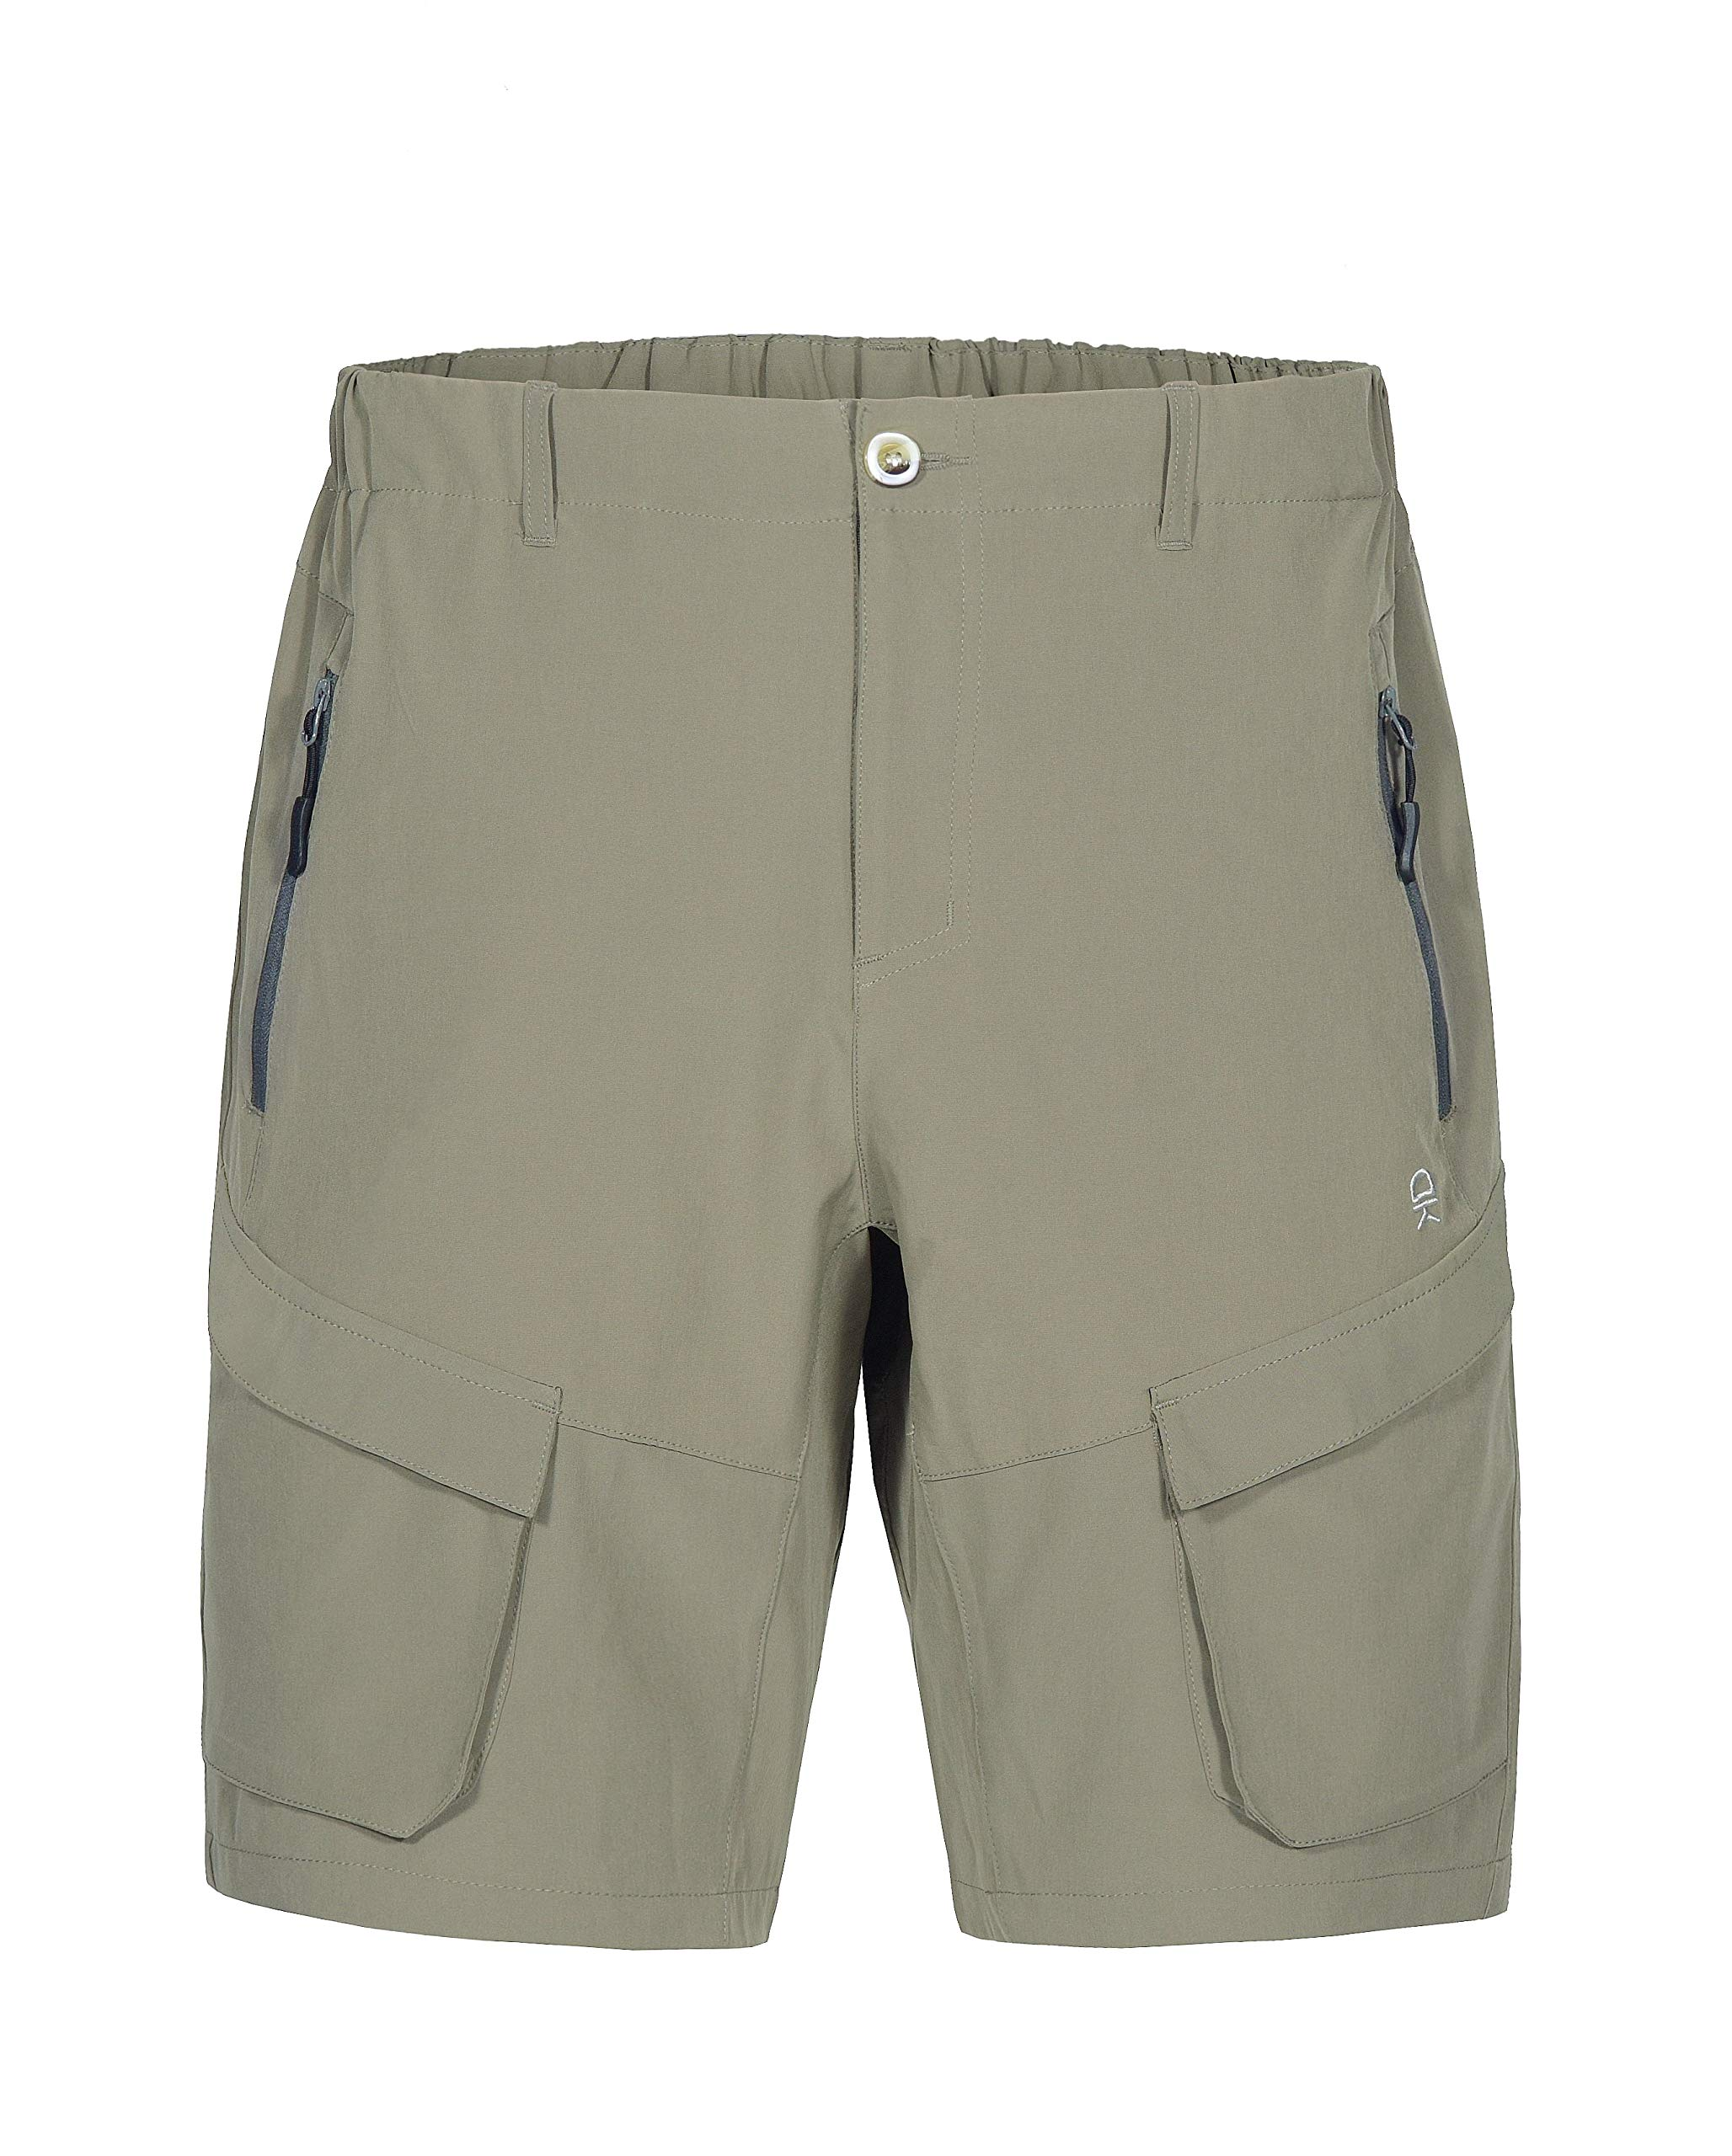 Little Donkey Andy Men's Stretch Quick Dry Cargo Shorts for Hiking, Camping, Travel Sage Size M by Little Donkey Andy